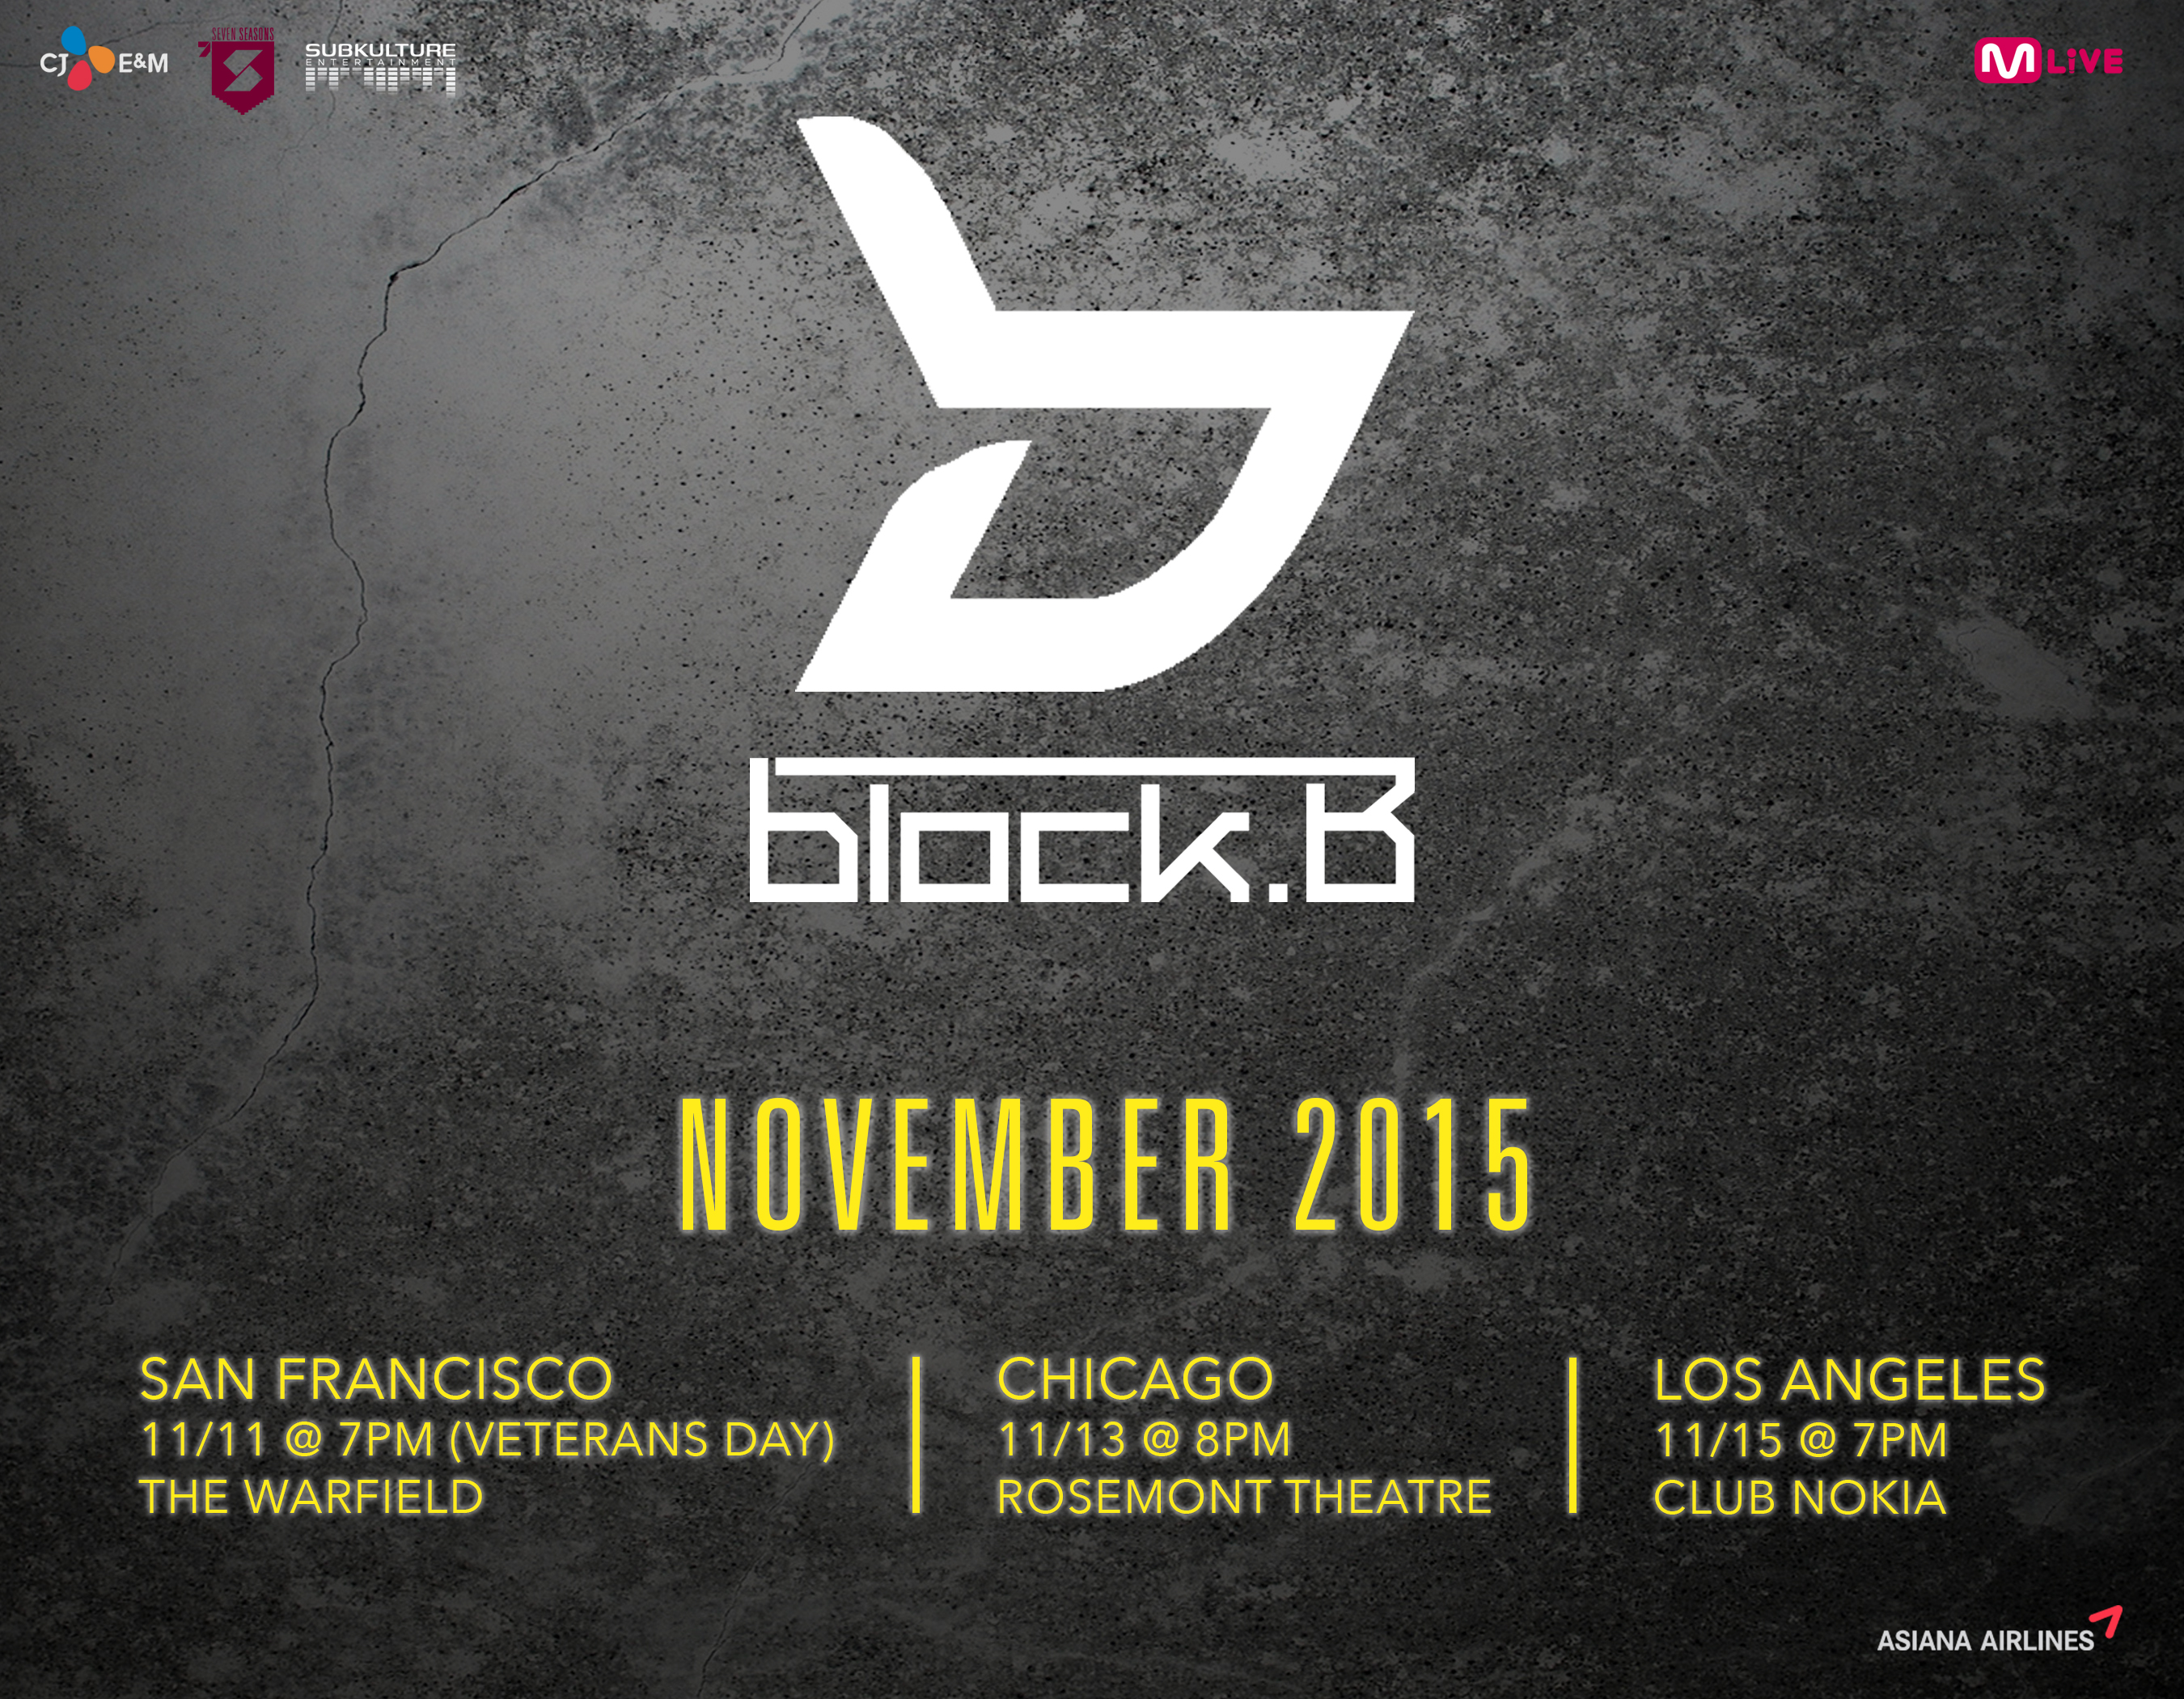 Additional Information and Ticket Pricing for 2015 Block B US Tour Announced